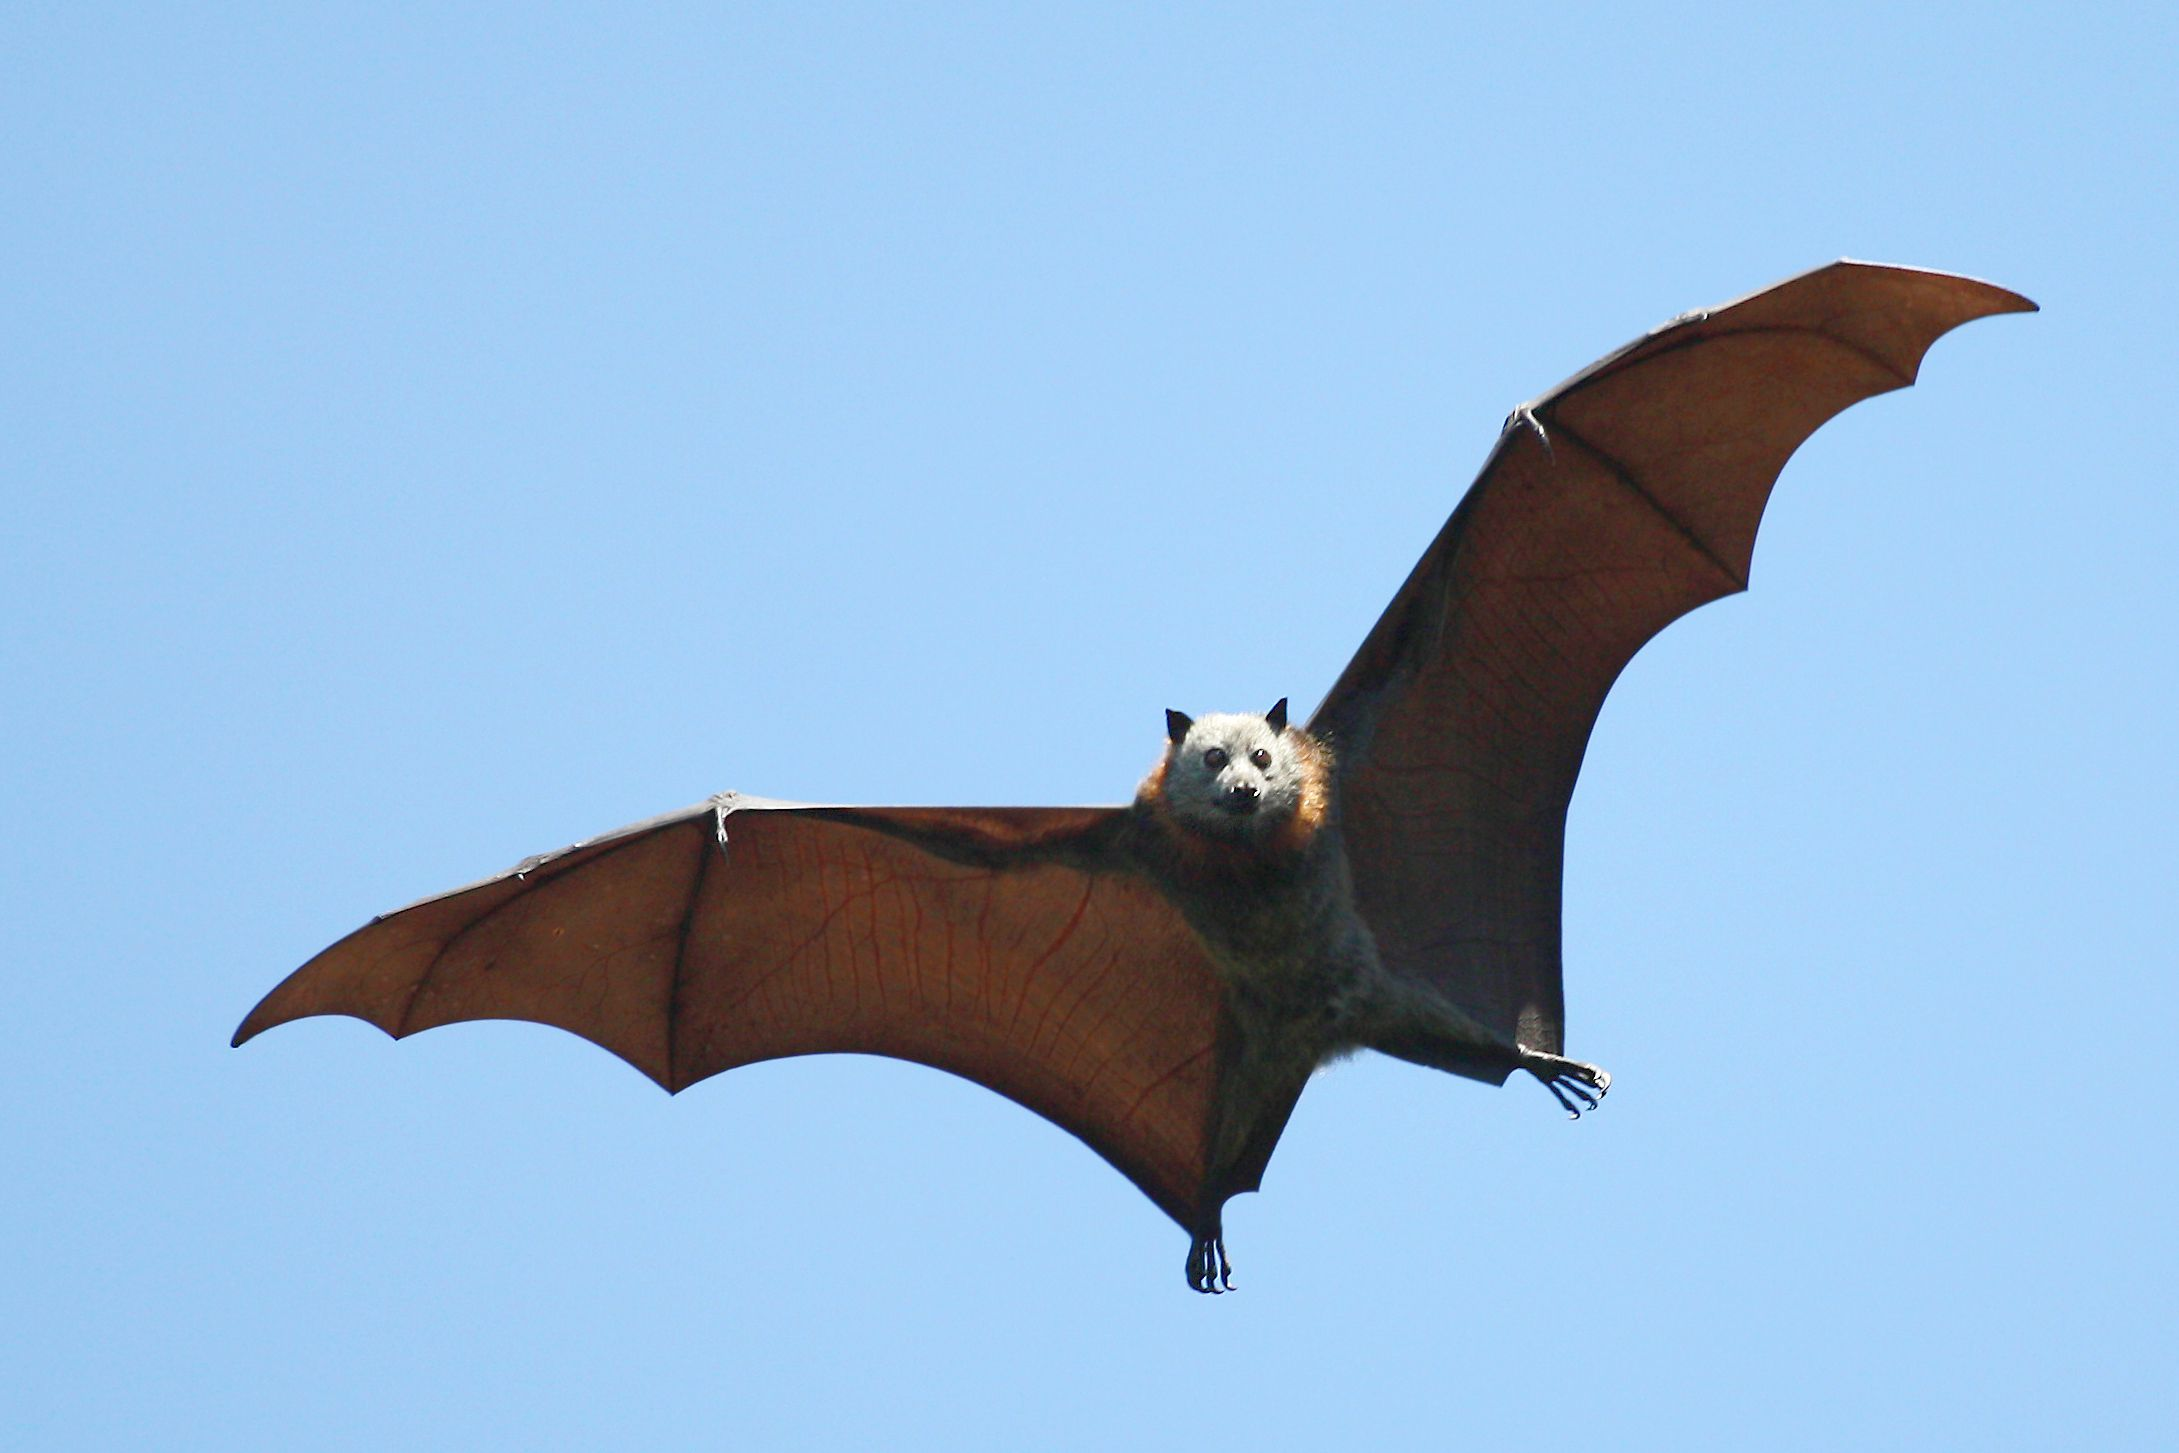 Bat flying against a blue sky looking at the camera.